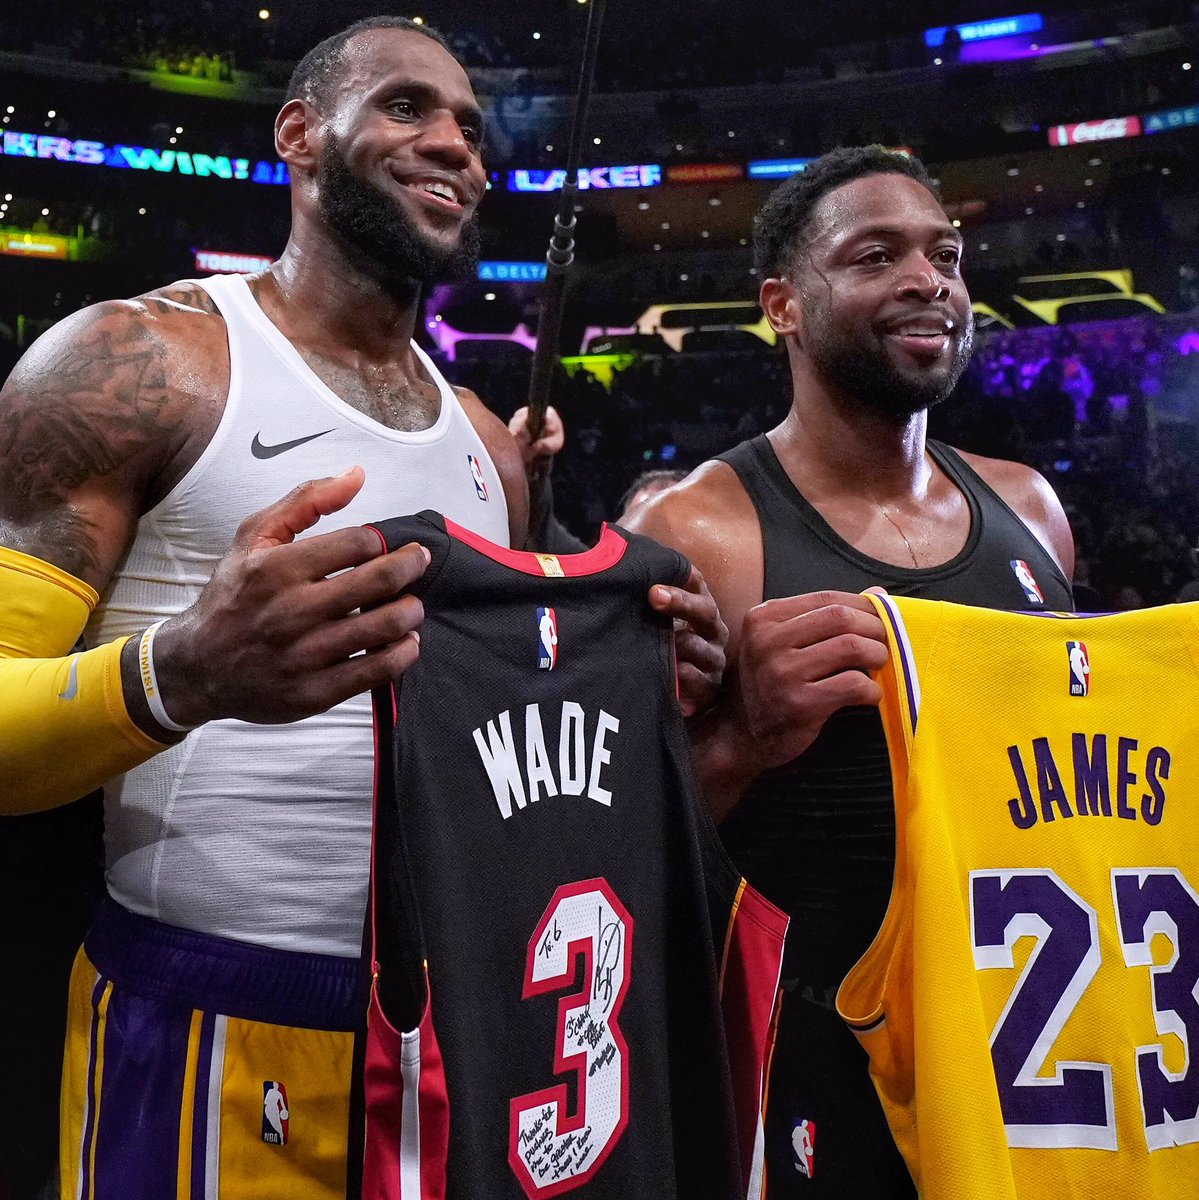 """D-Wade's message to LeBron: """"Thanks for pushing me to be greater than I knew I was."""" ✊  #OneLastDance """